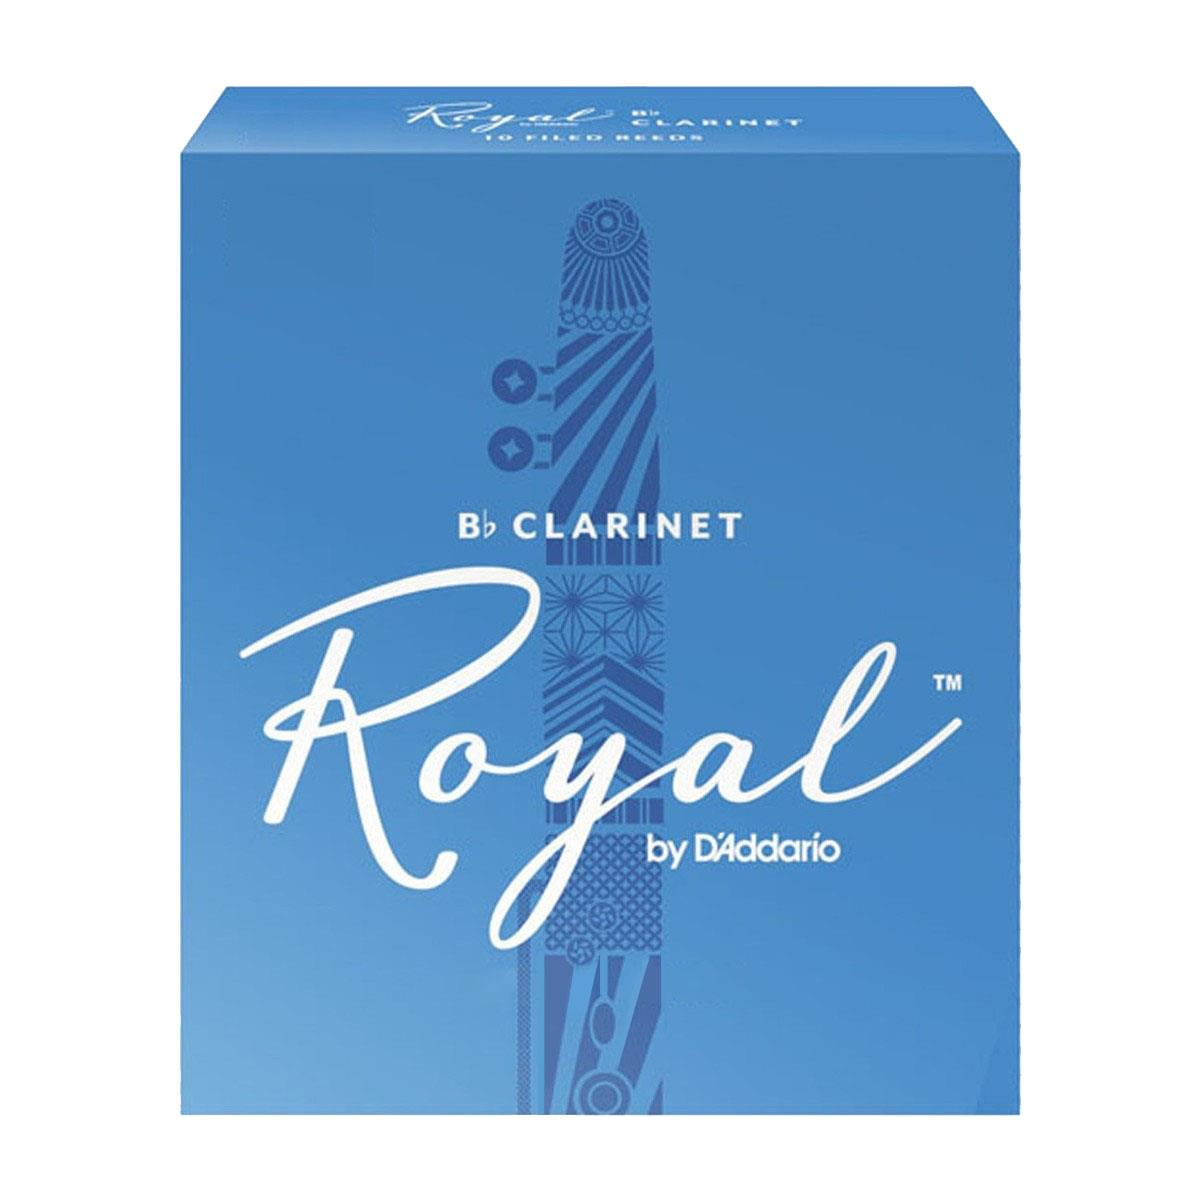 Image of D'Addario Woodwind Royal RCB1015 Bb Clarinet Reeds Strength 1.5 10-pack 0046716533227